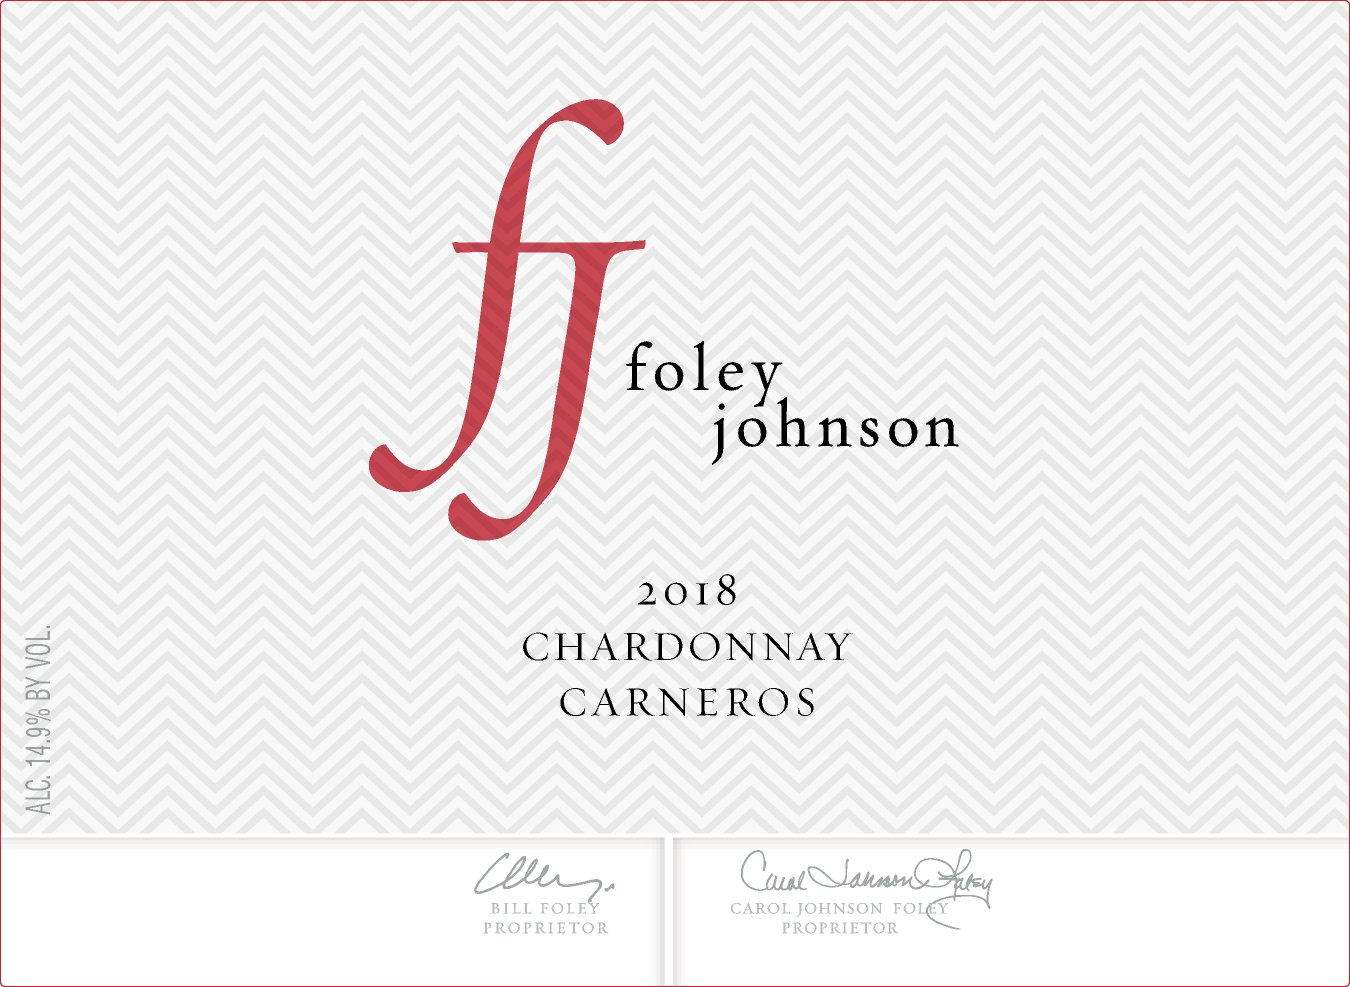 2016 Foley Johnson Chardonnay